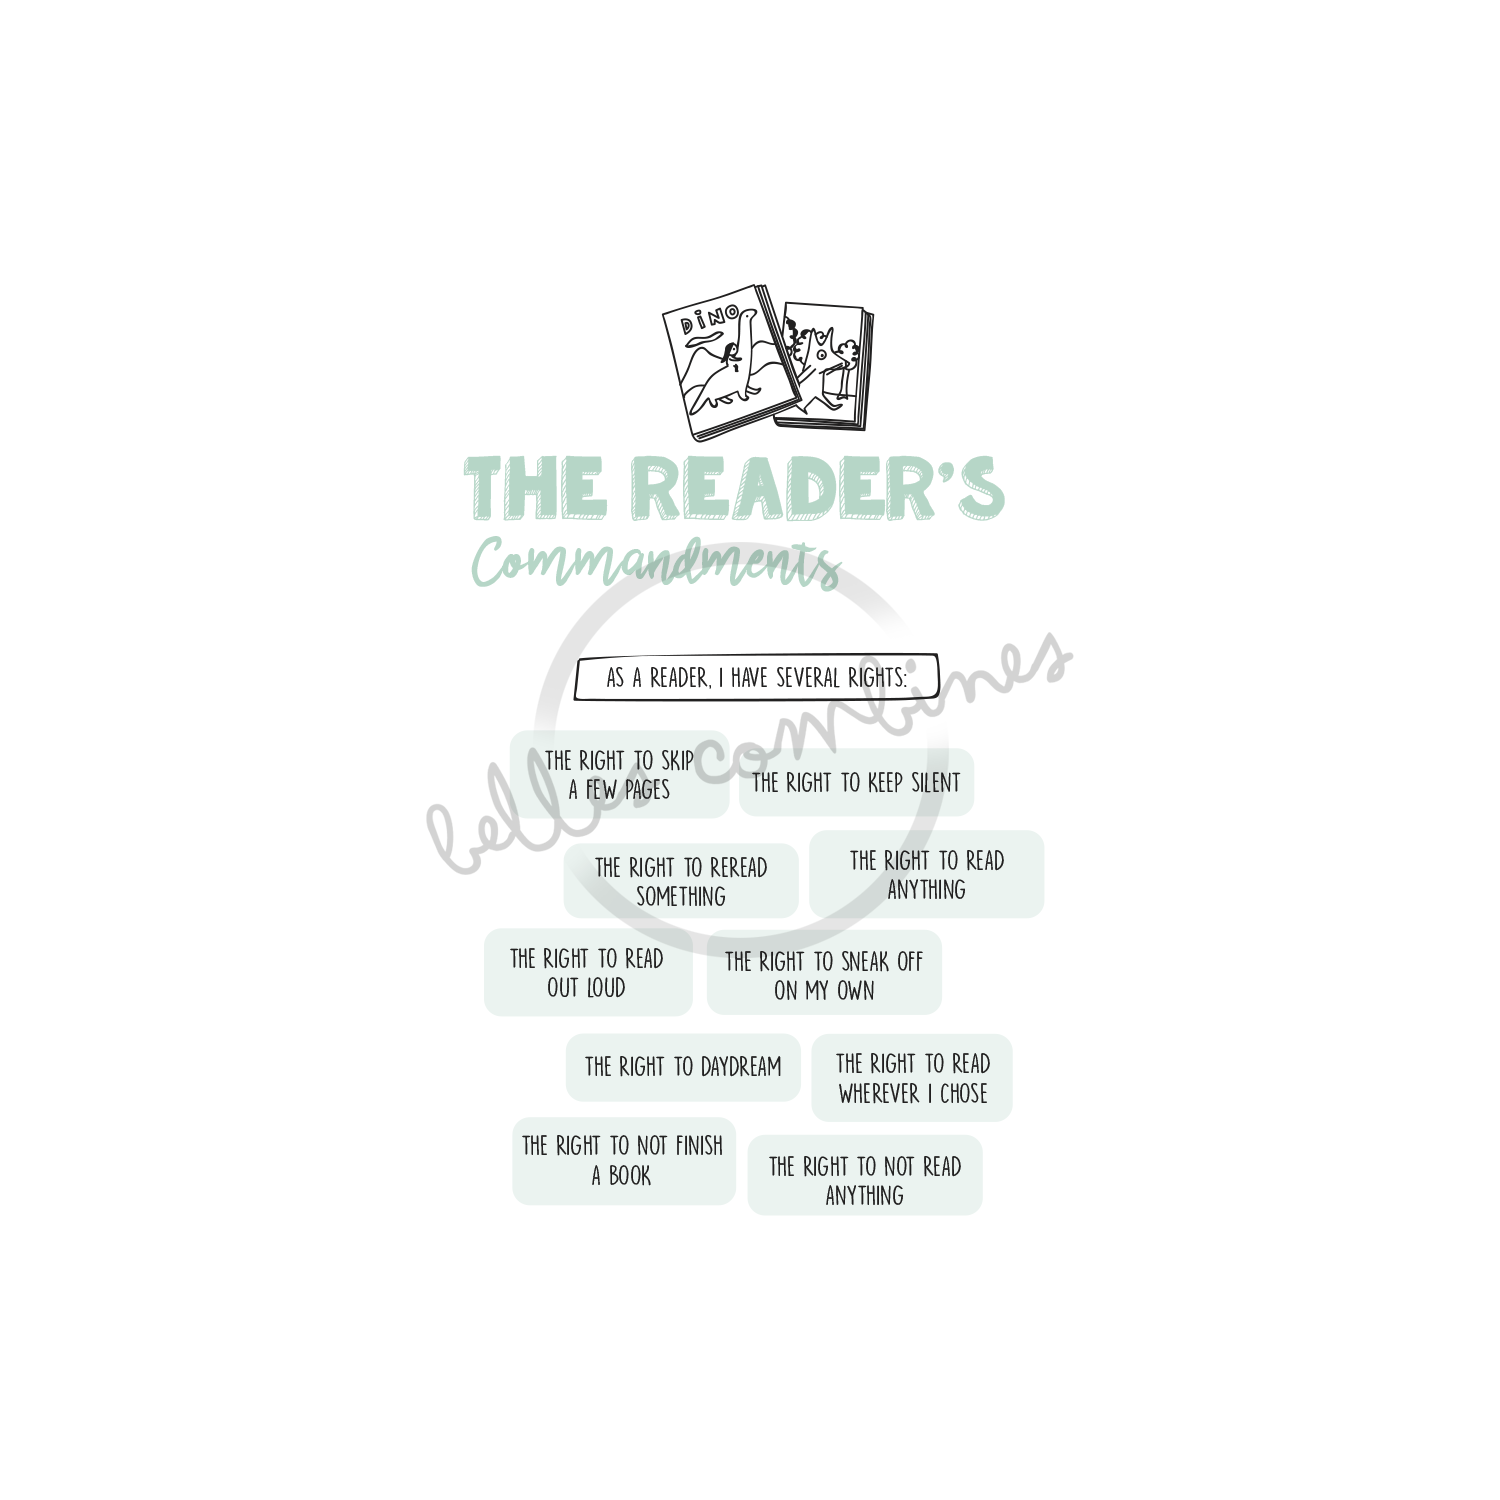 English version of the reader's commandments document made by Les Belles Combines